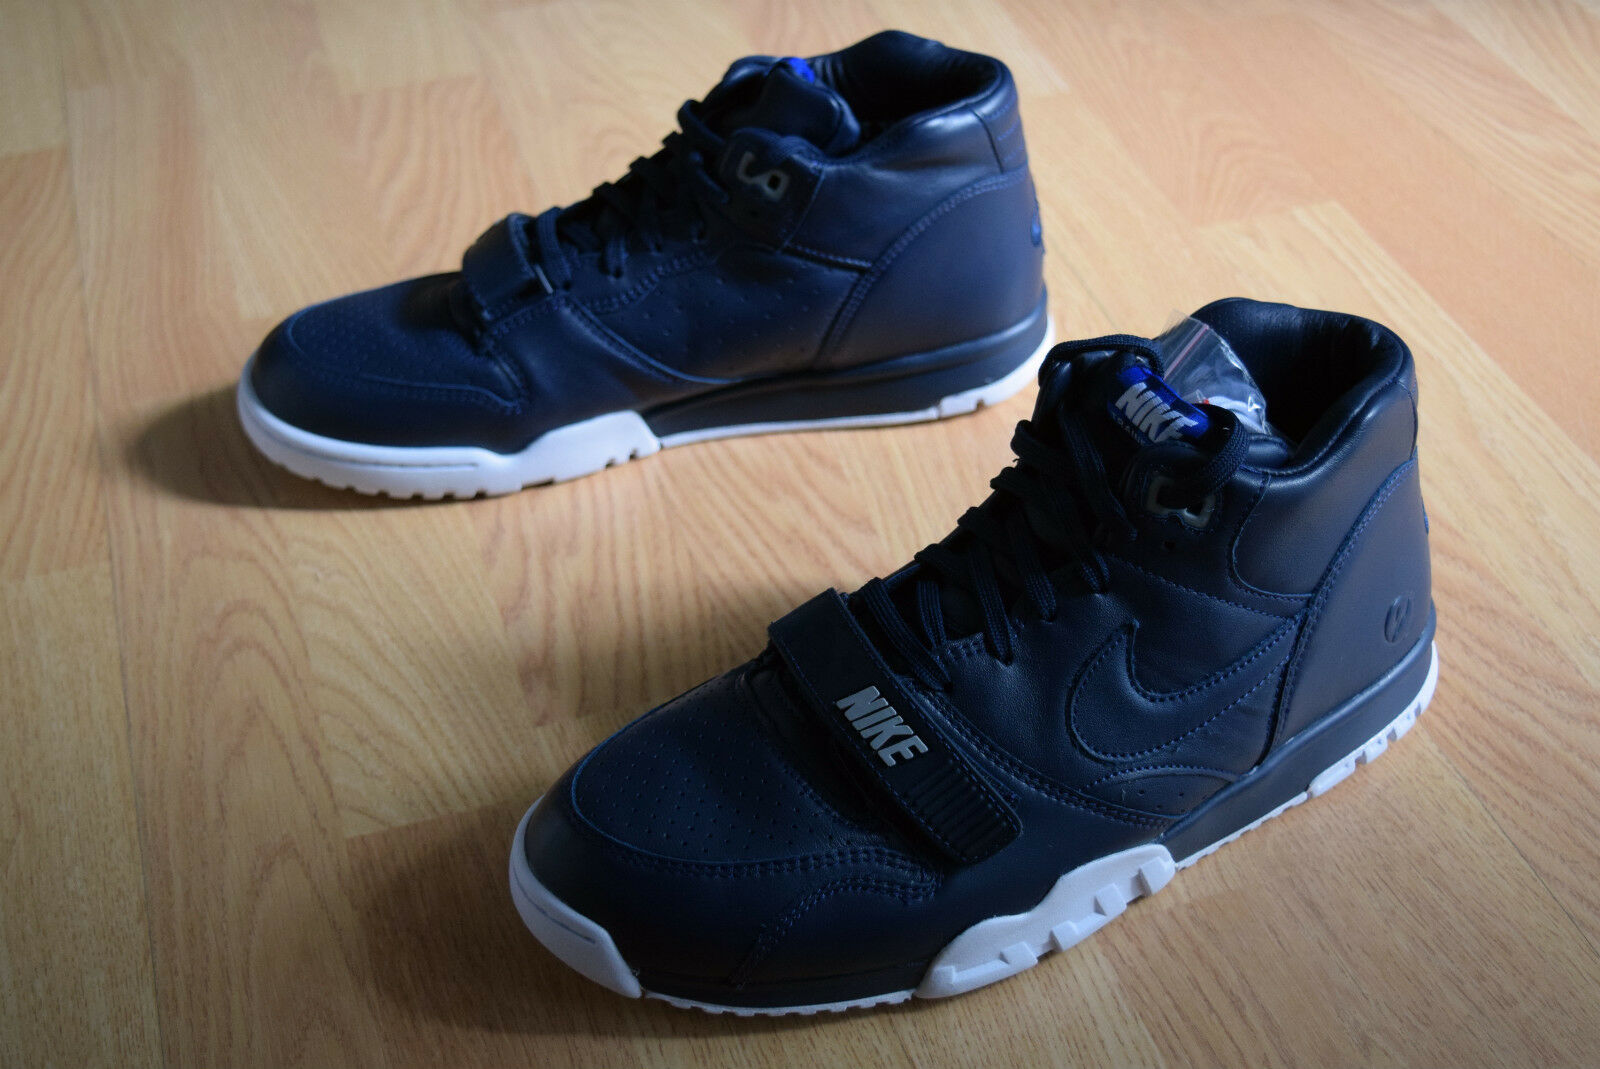 NIKE Air Trainer 1 Mid Fragment SP Fragment Mid 41 42,5 43 45 47,5 jOrDaN fLiGhT foRce cef1b6